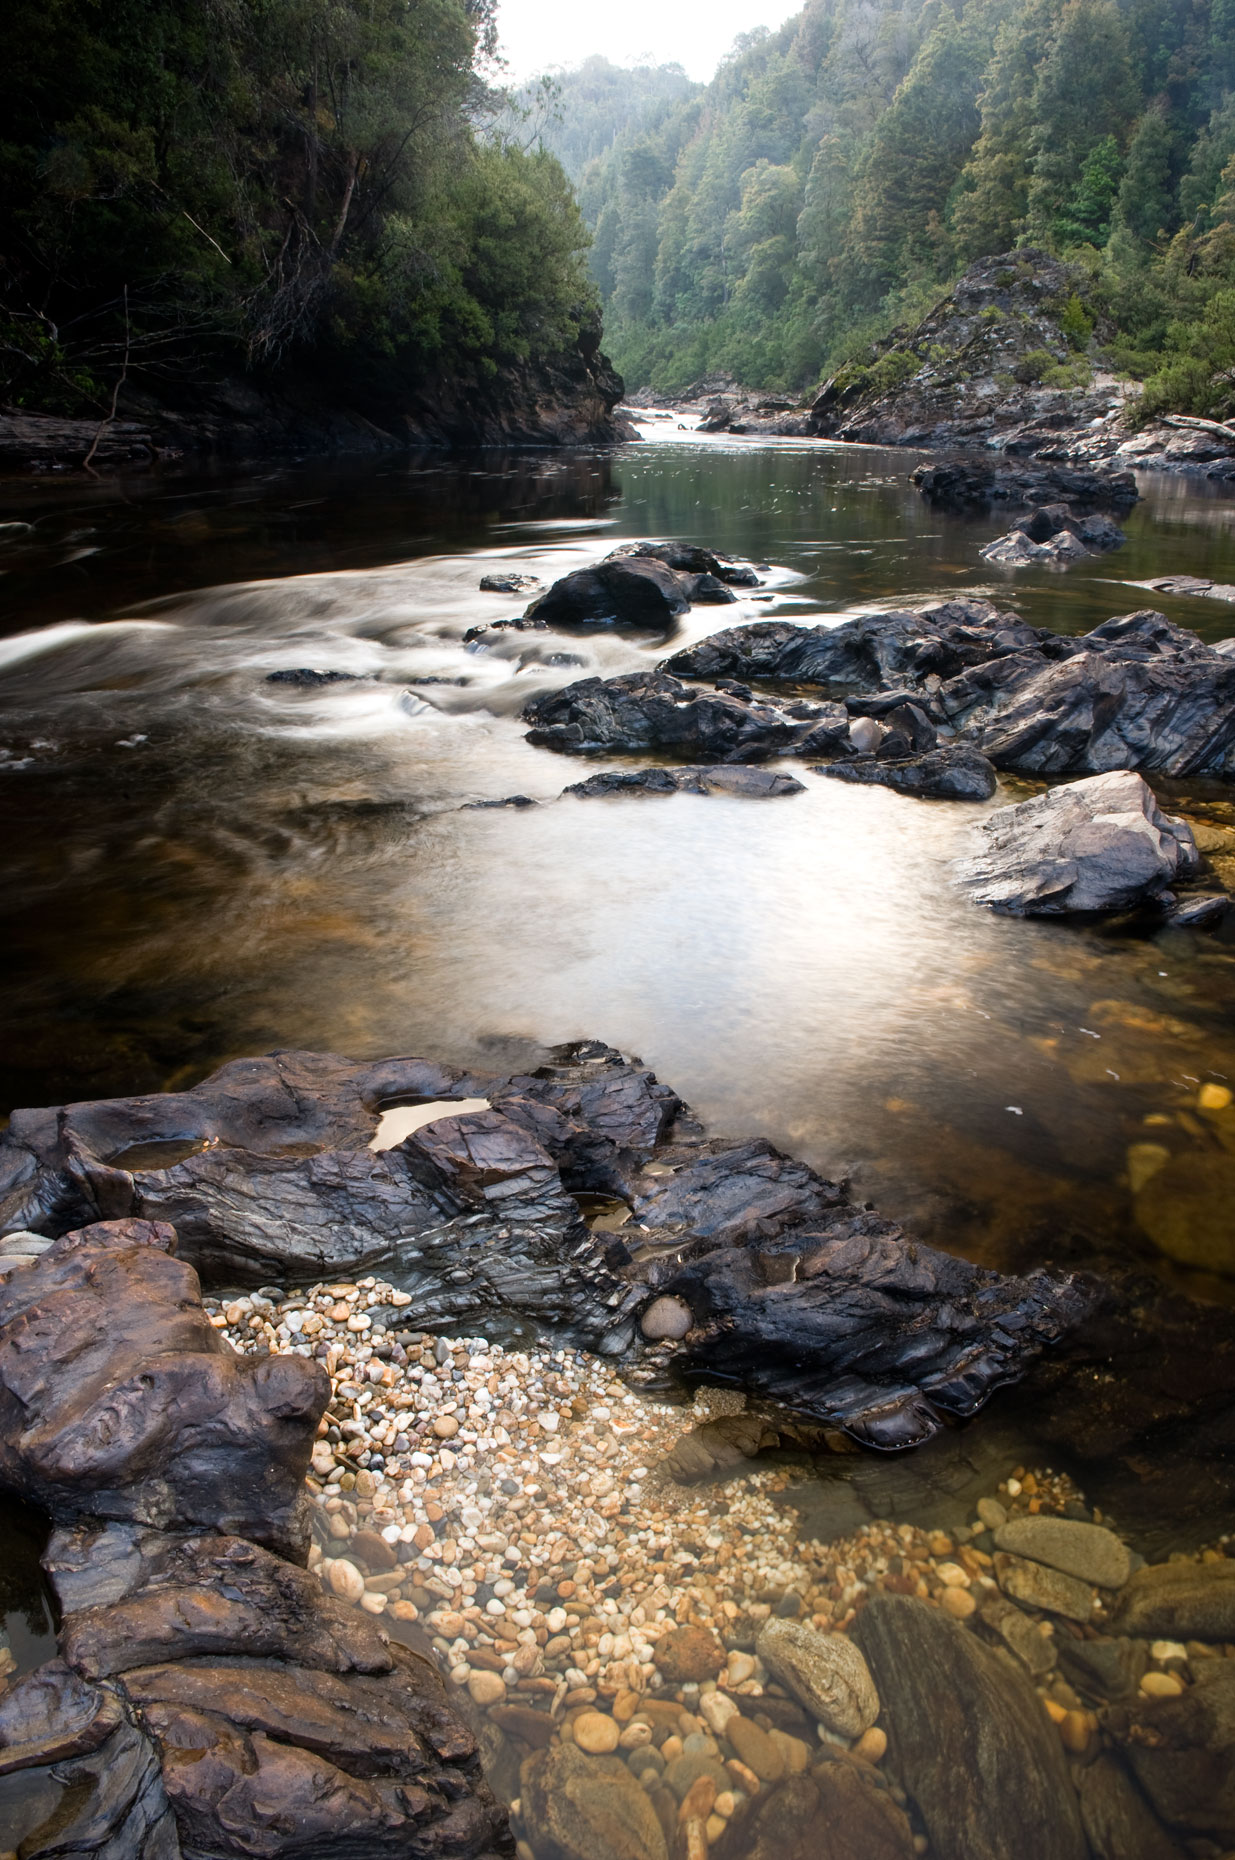 Franklin_River_006.jpg